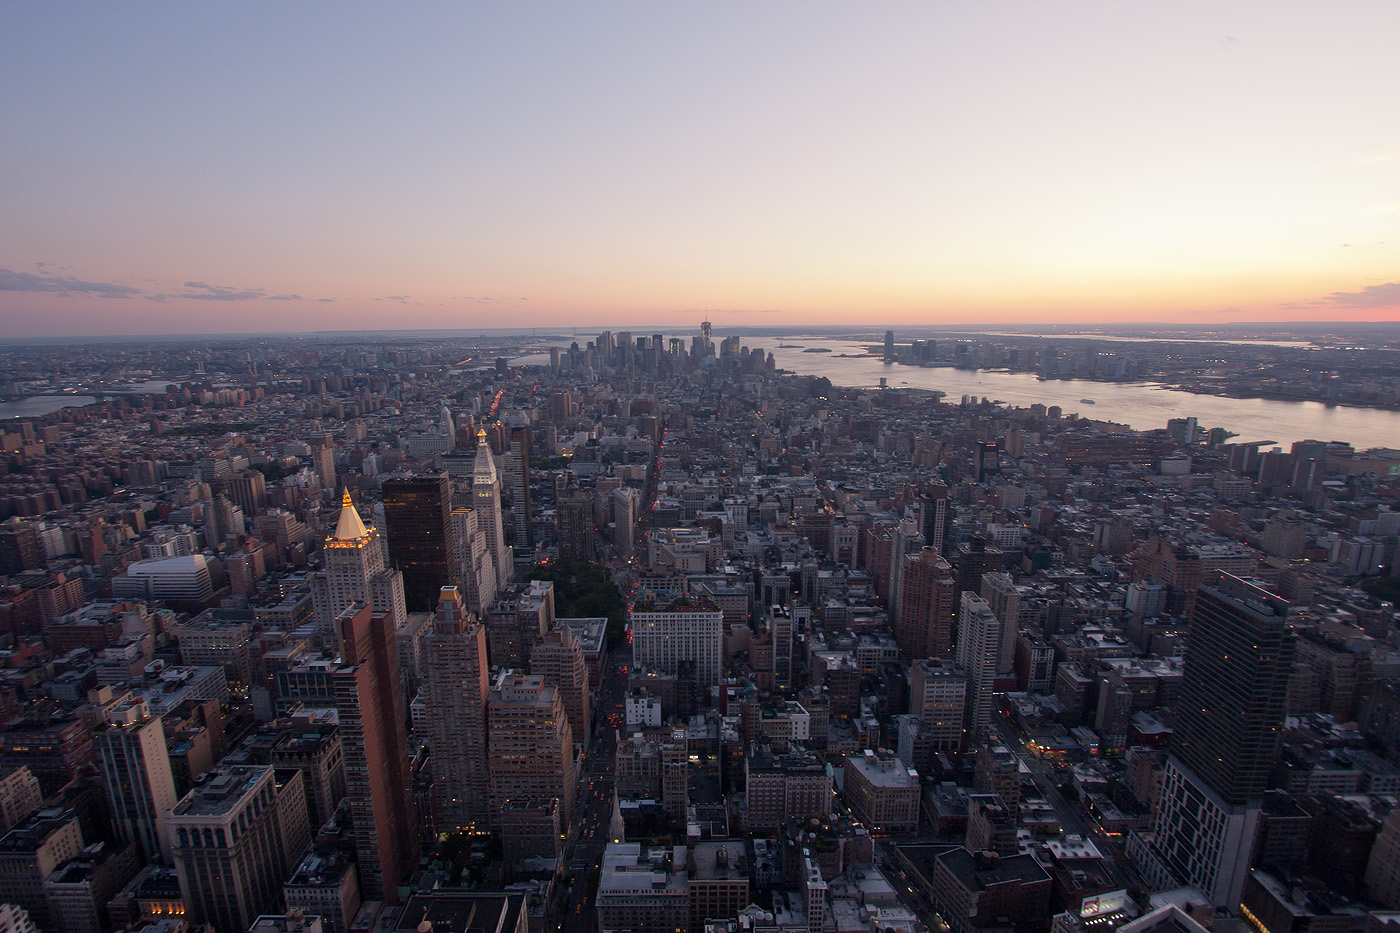 Sunset over Empire State Building